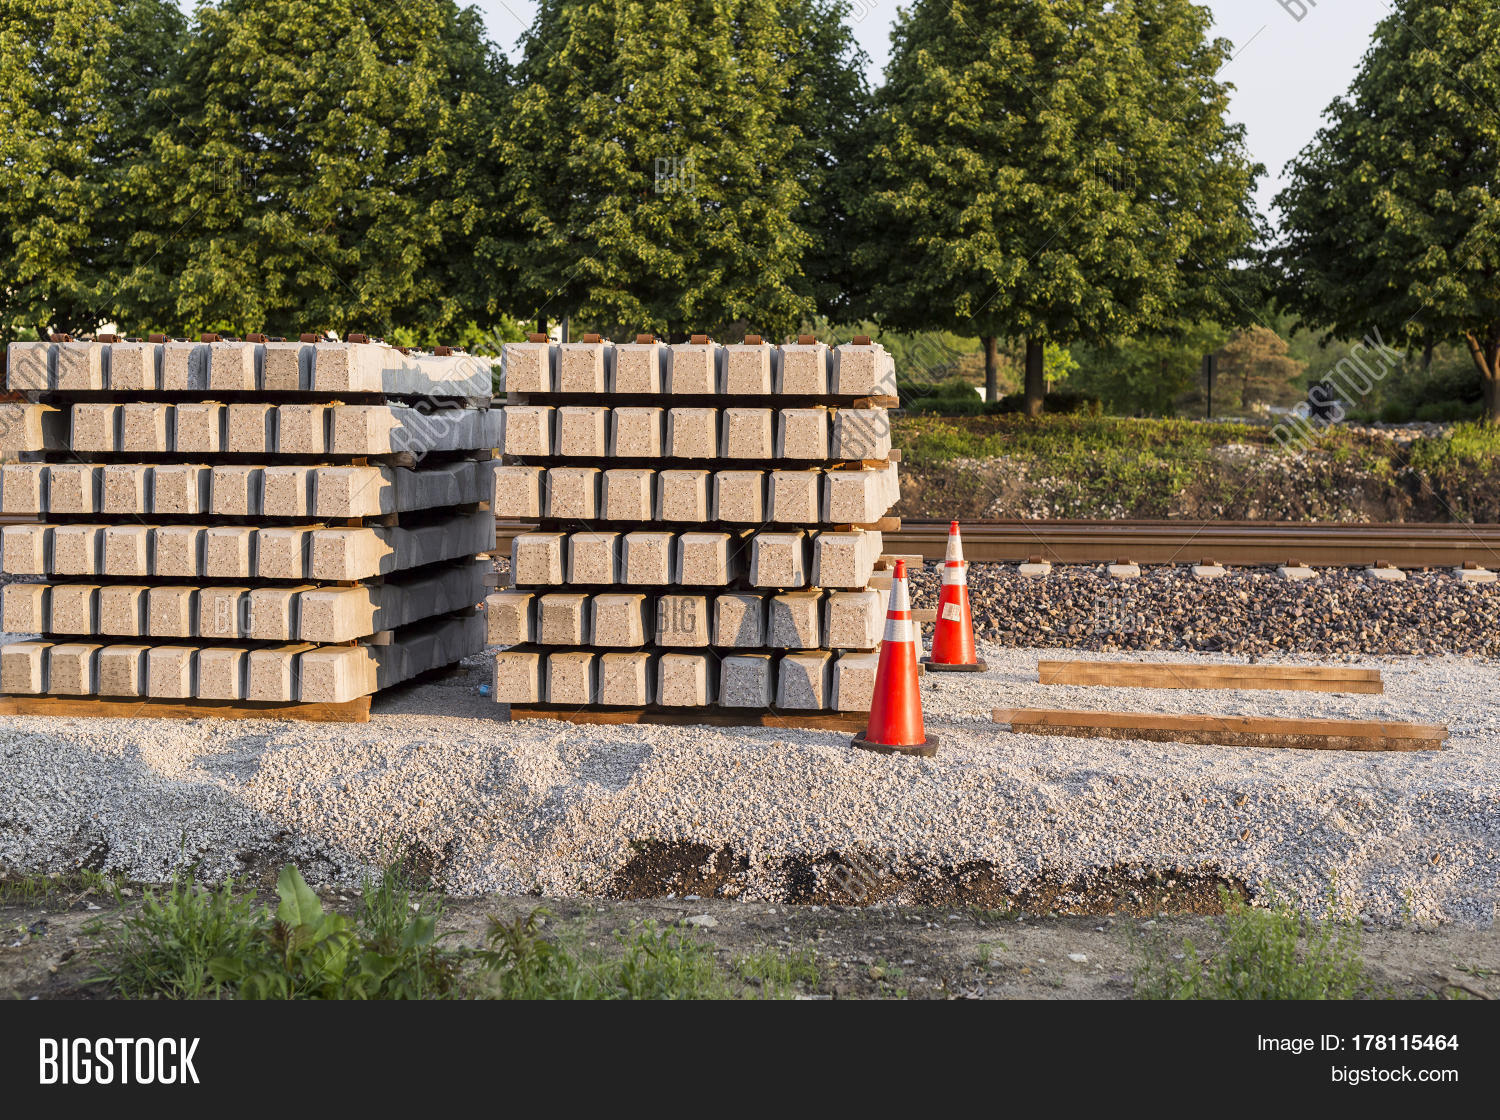 Stack Railroad Ties Image & Photo (Free Trial) | Bigstock